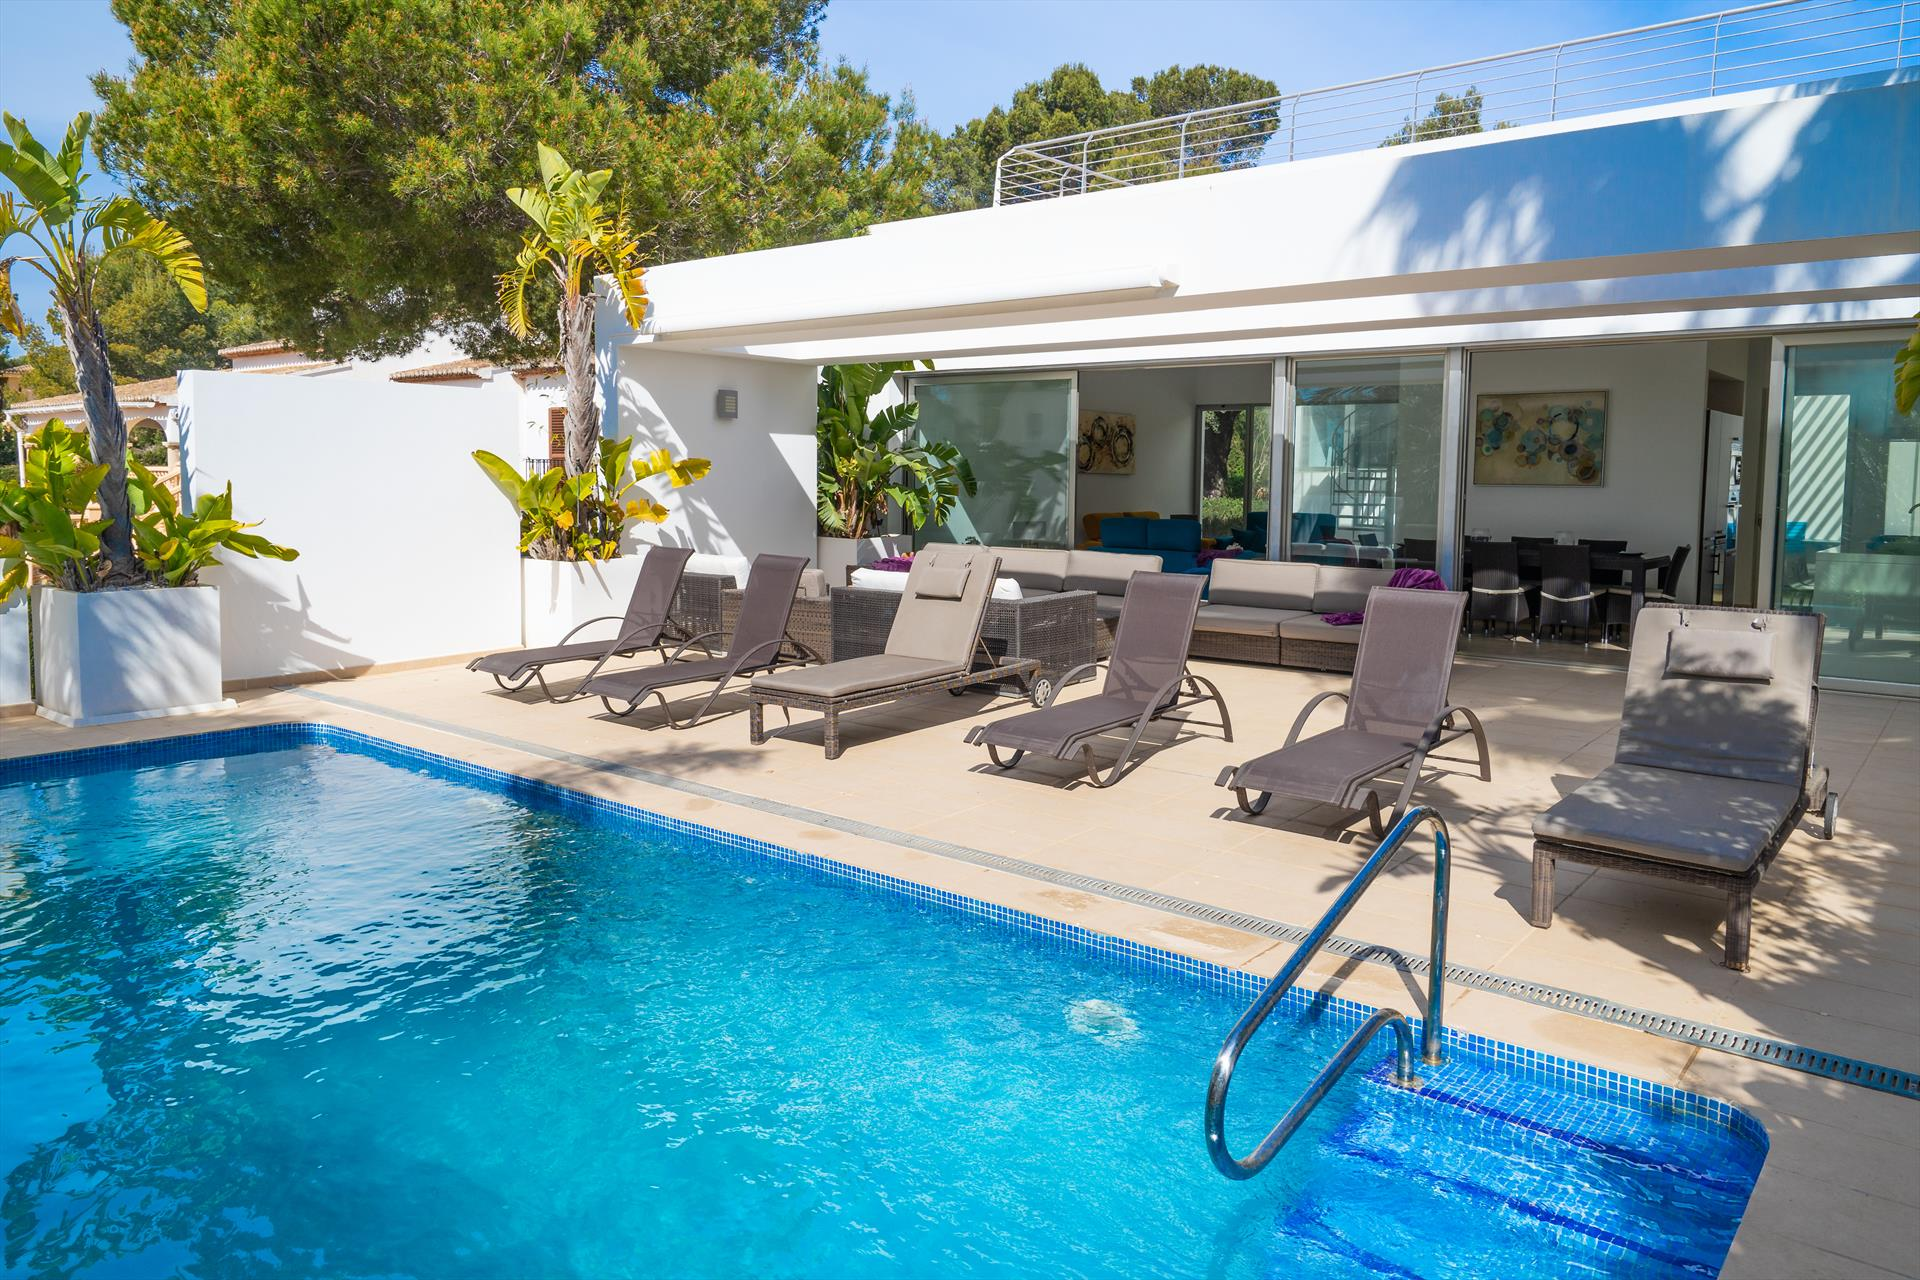 Casa Elche 6 pax, Modern and nice villa in Javea, on the Costa Blanca, Spain  with private pool for 6 persons.....